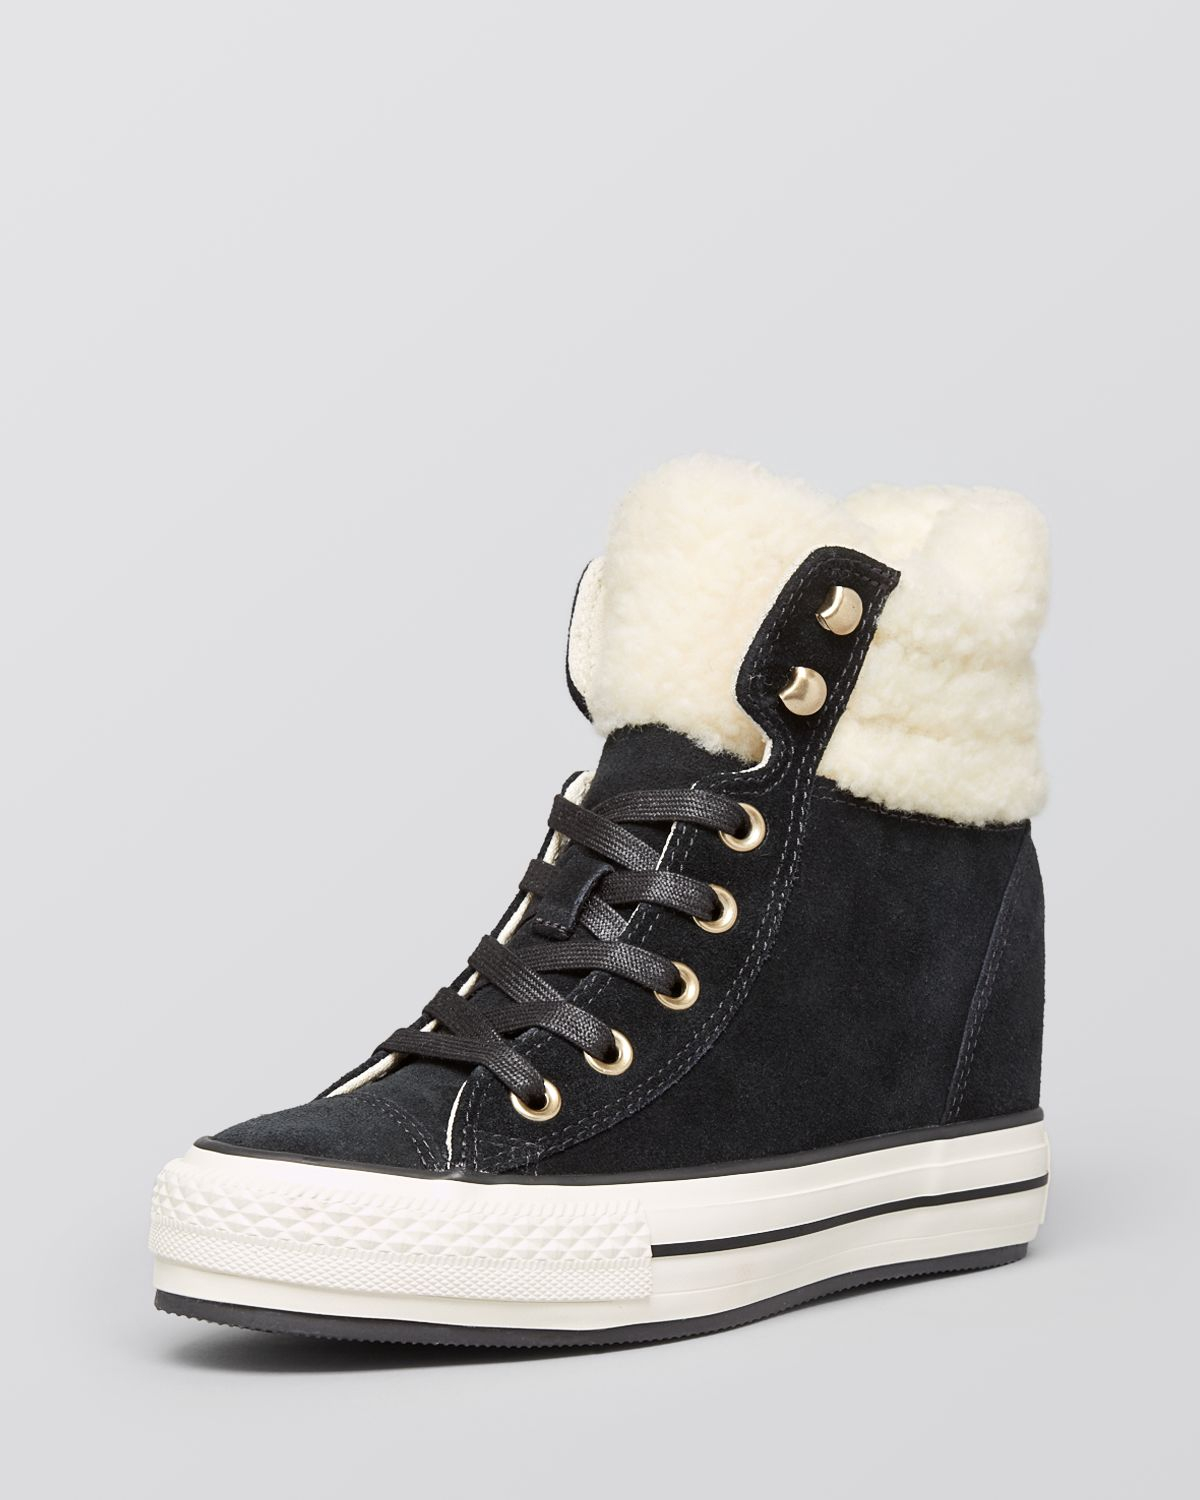 Lyst - Converse Lace Up High Top Wedge Sneakers - Faux-Shearling in ... a2c51dfac